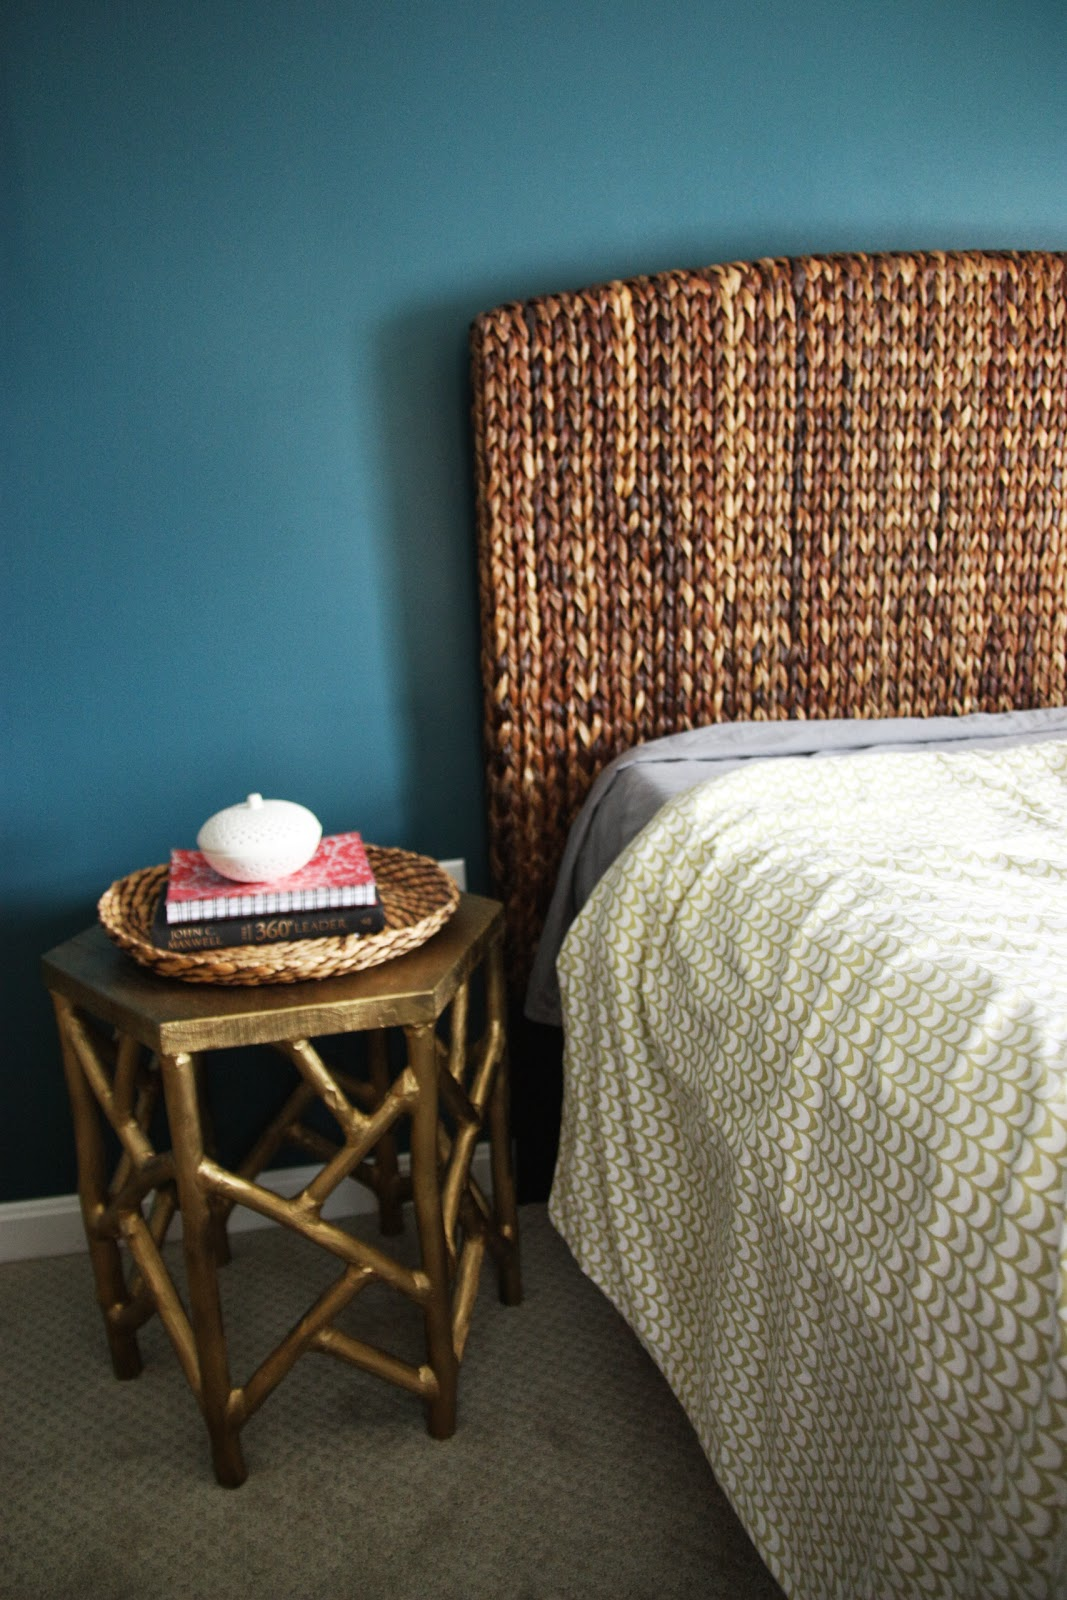 Wicker Headboards Queen | Seagrass Headboard King | Rattan Queen Bed